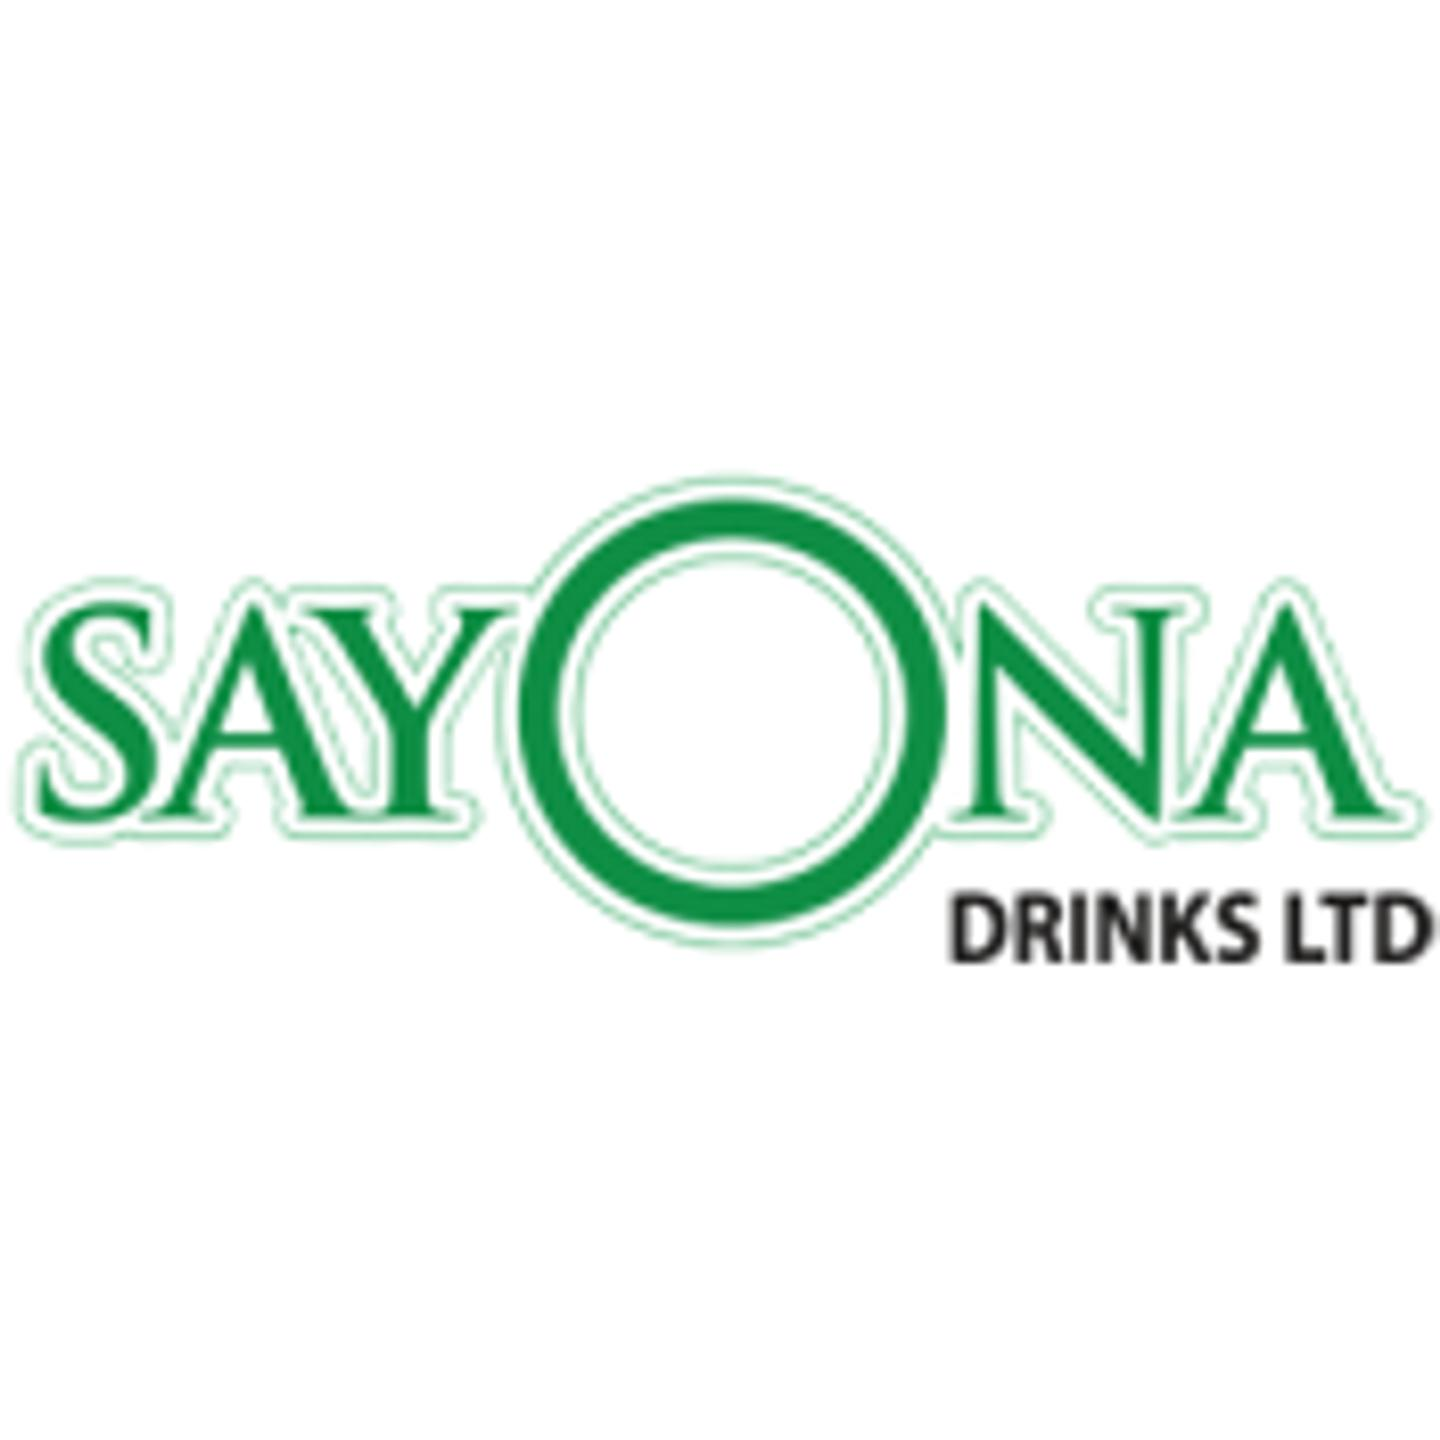 Wholesale Suppliers In Tanzania Sayona Drinks In Tanzania Zoomtanzania